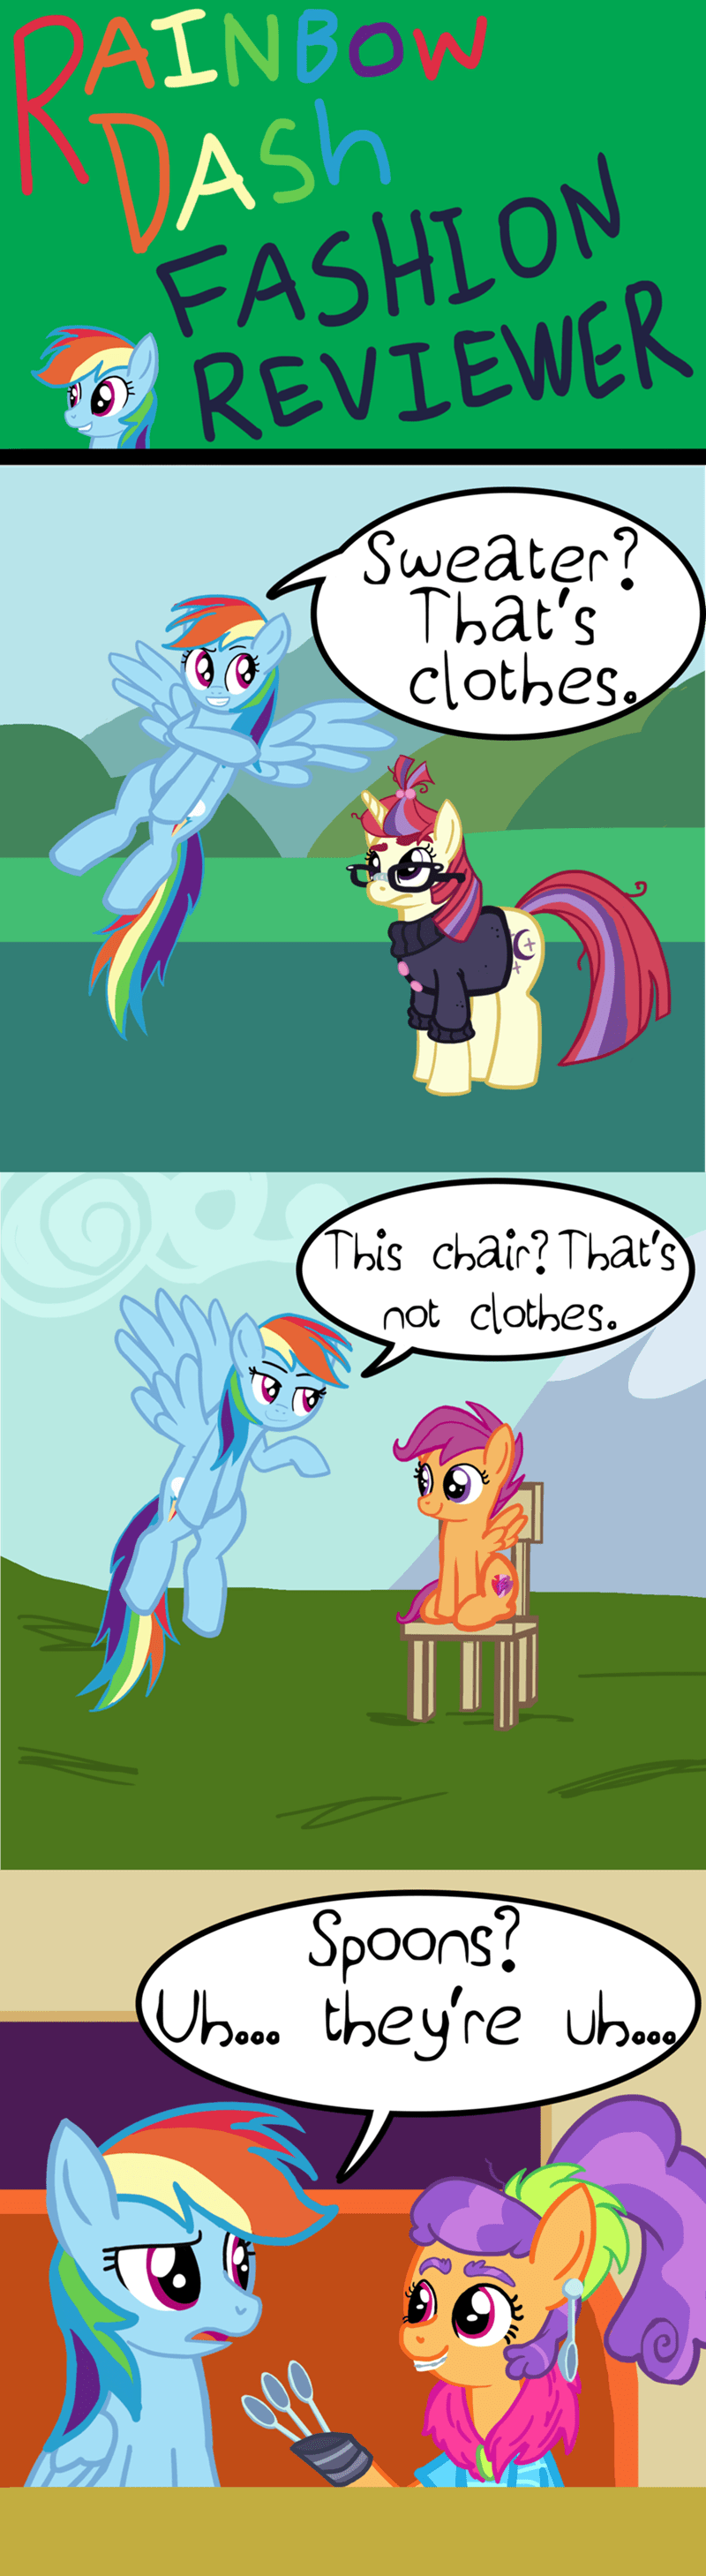 plaid stripes moon dancer spoons comic Scootaloo rainbow dash - 8799294976